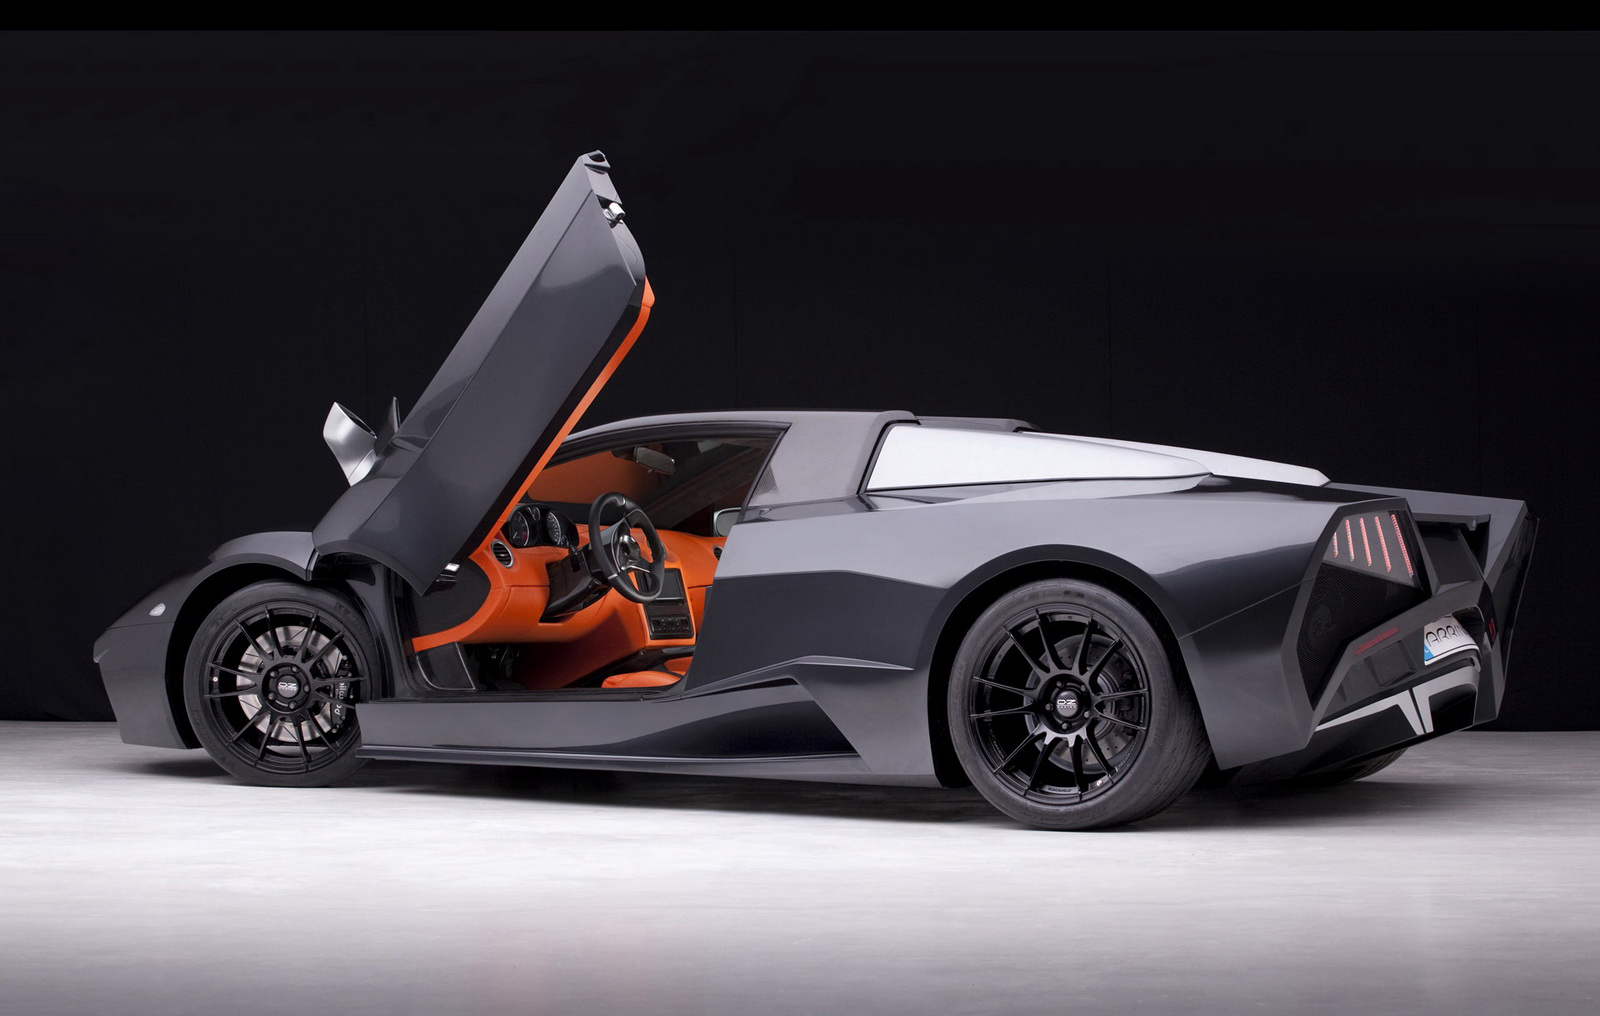 Polands Arrinera Supercar 1 Arrinera   Super Car with Aerodynamic Features